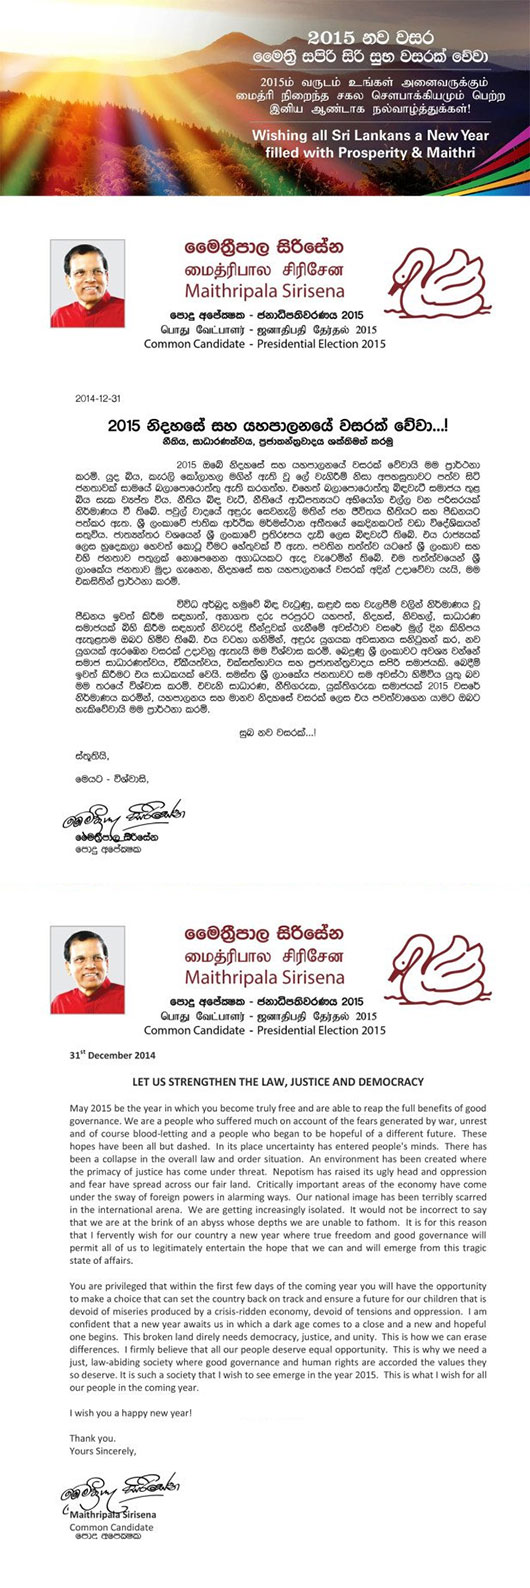 2015 New Year Message of Maithripala Sirisena